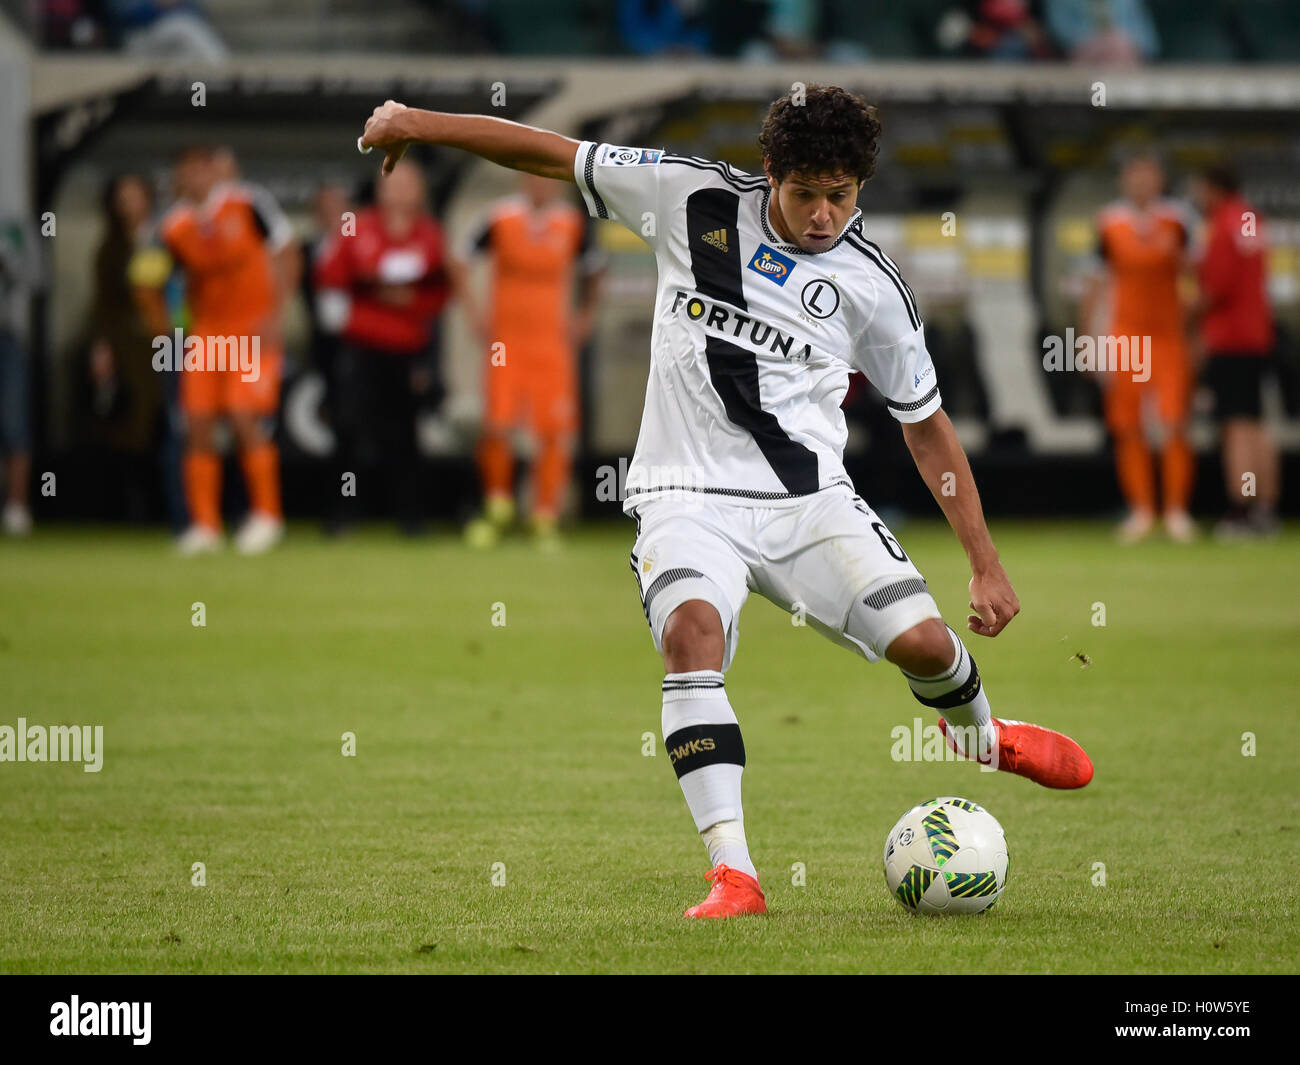 WARSAW, POLAND - SEPTEMBER 18, 2016: Match Polish PremIer League Lotto Ekstraklasa between Legia Warszawa - KGHM - Stock Image